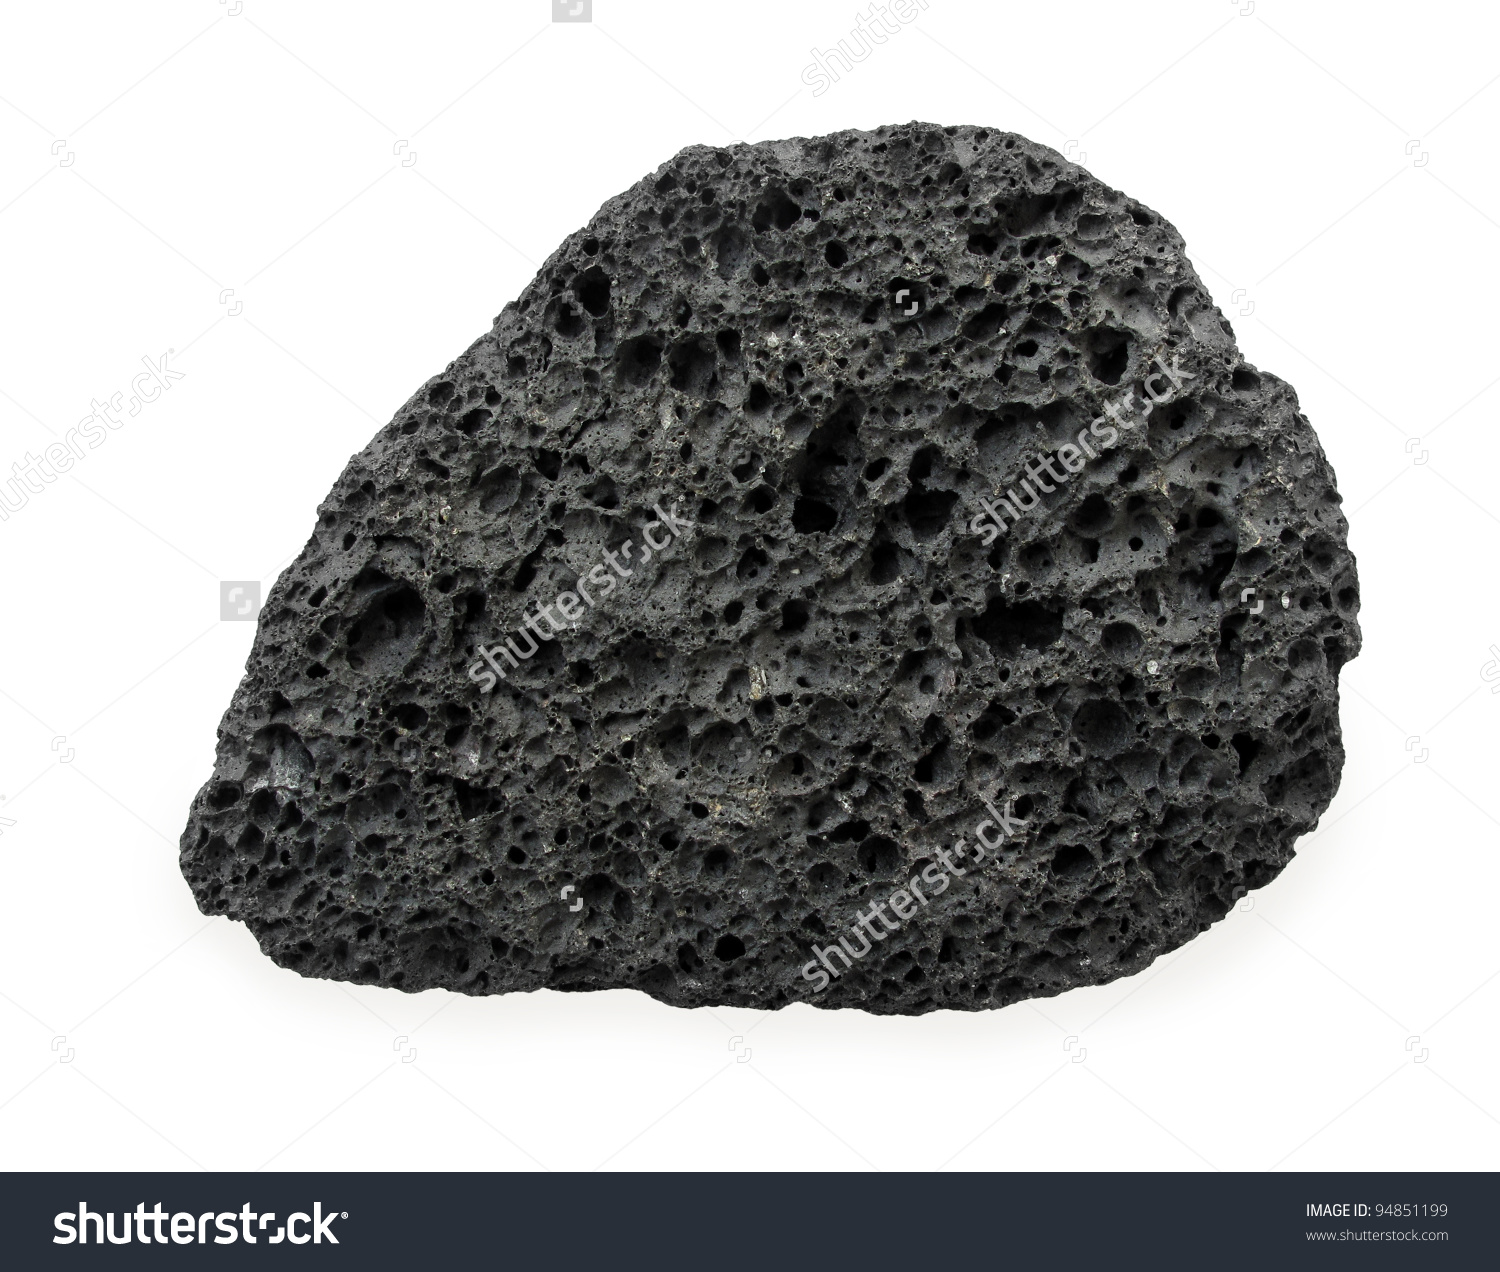 Volcanic Rock Stock Photo 94851199.